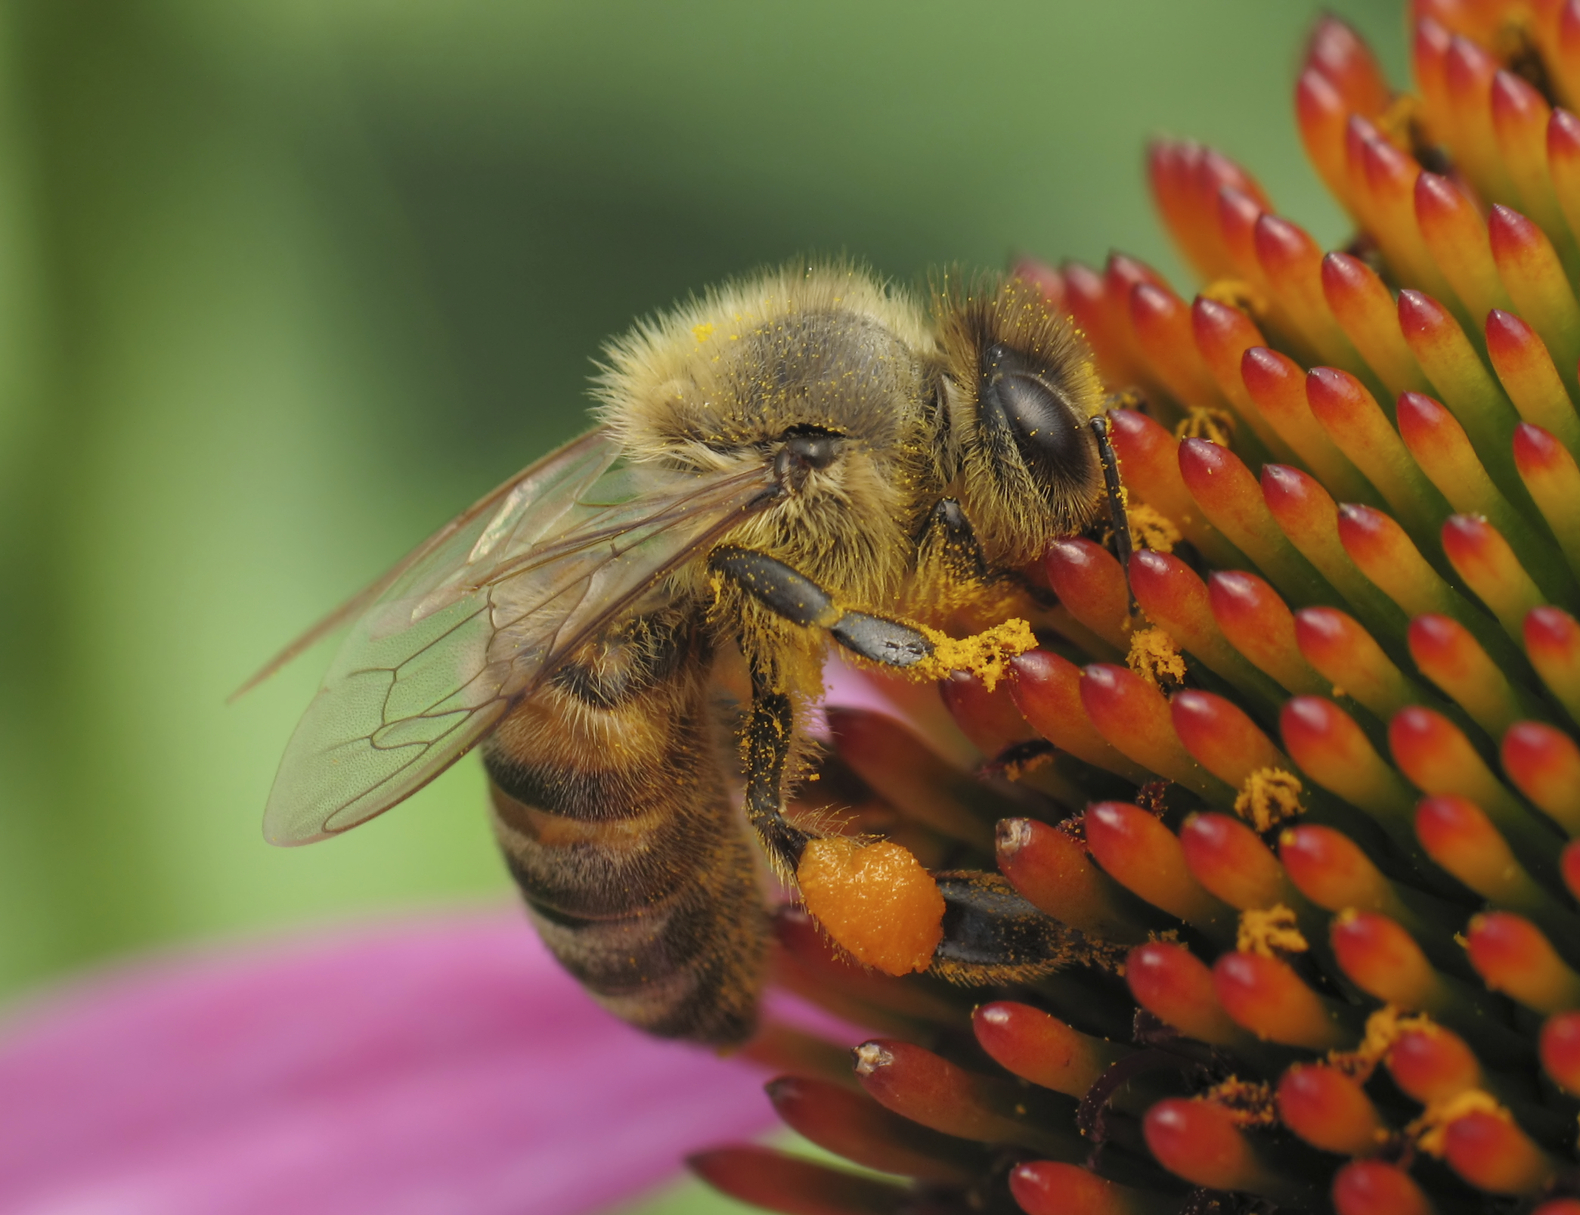 bee-on-coneflower-000006770712_Medium.jpg